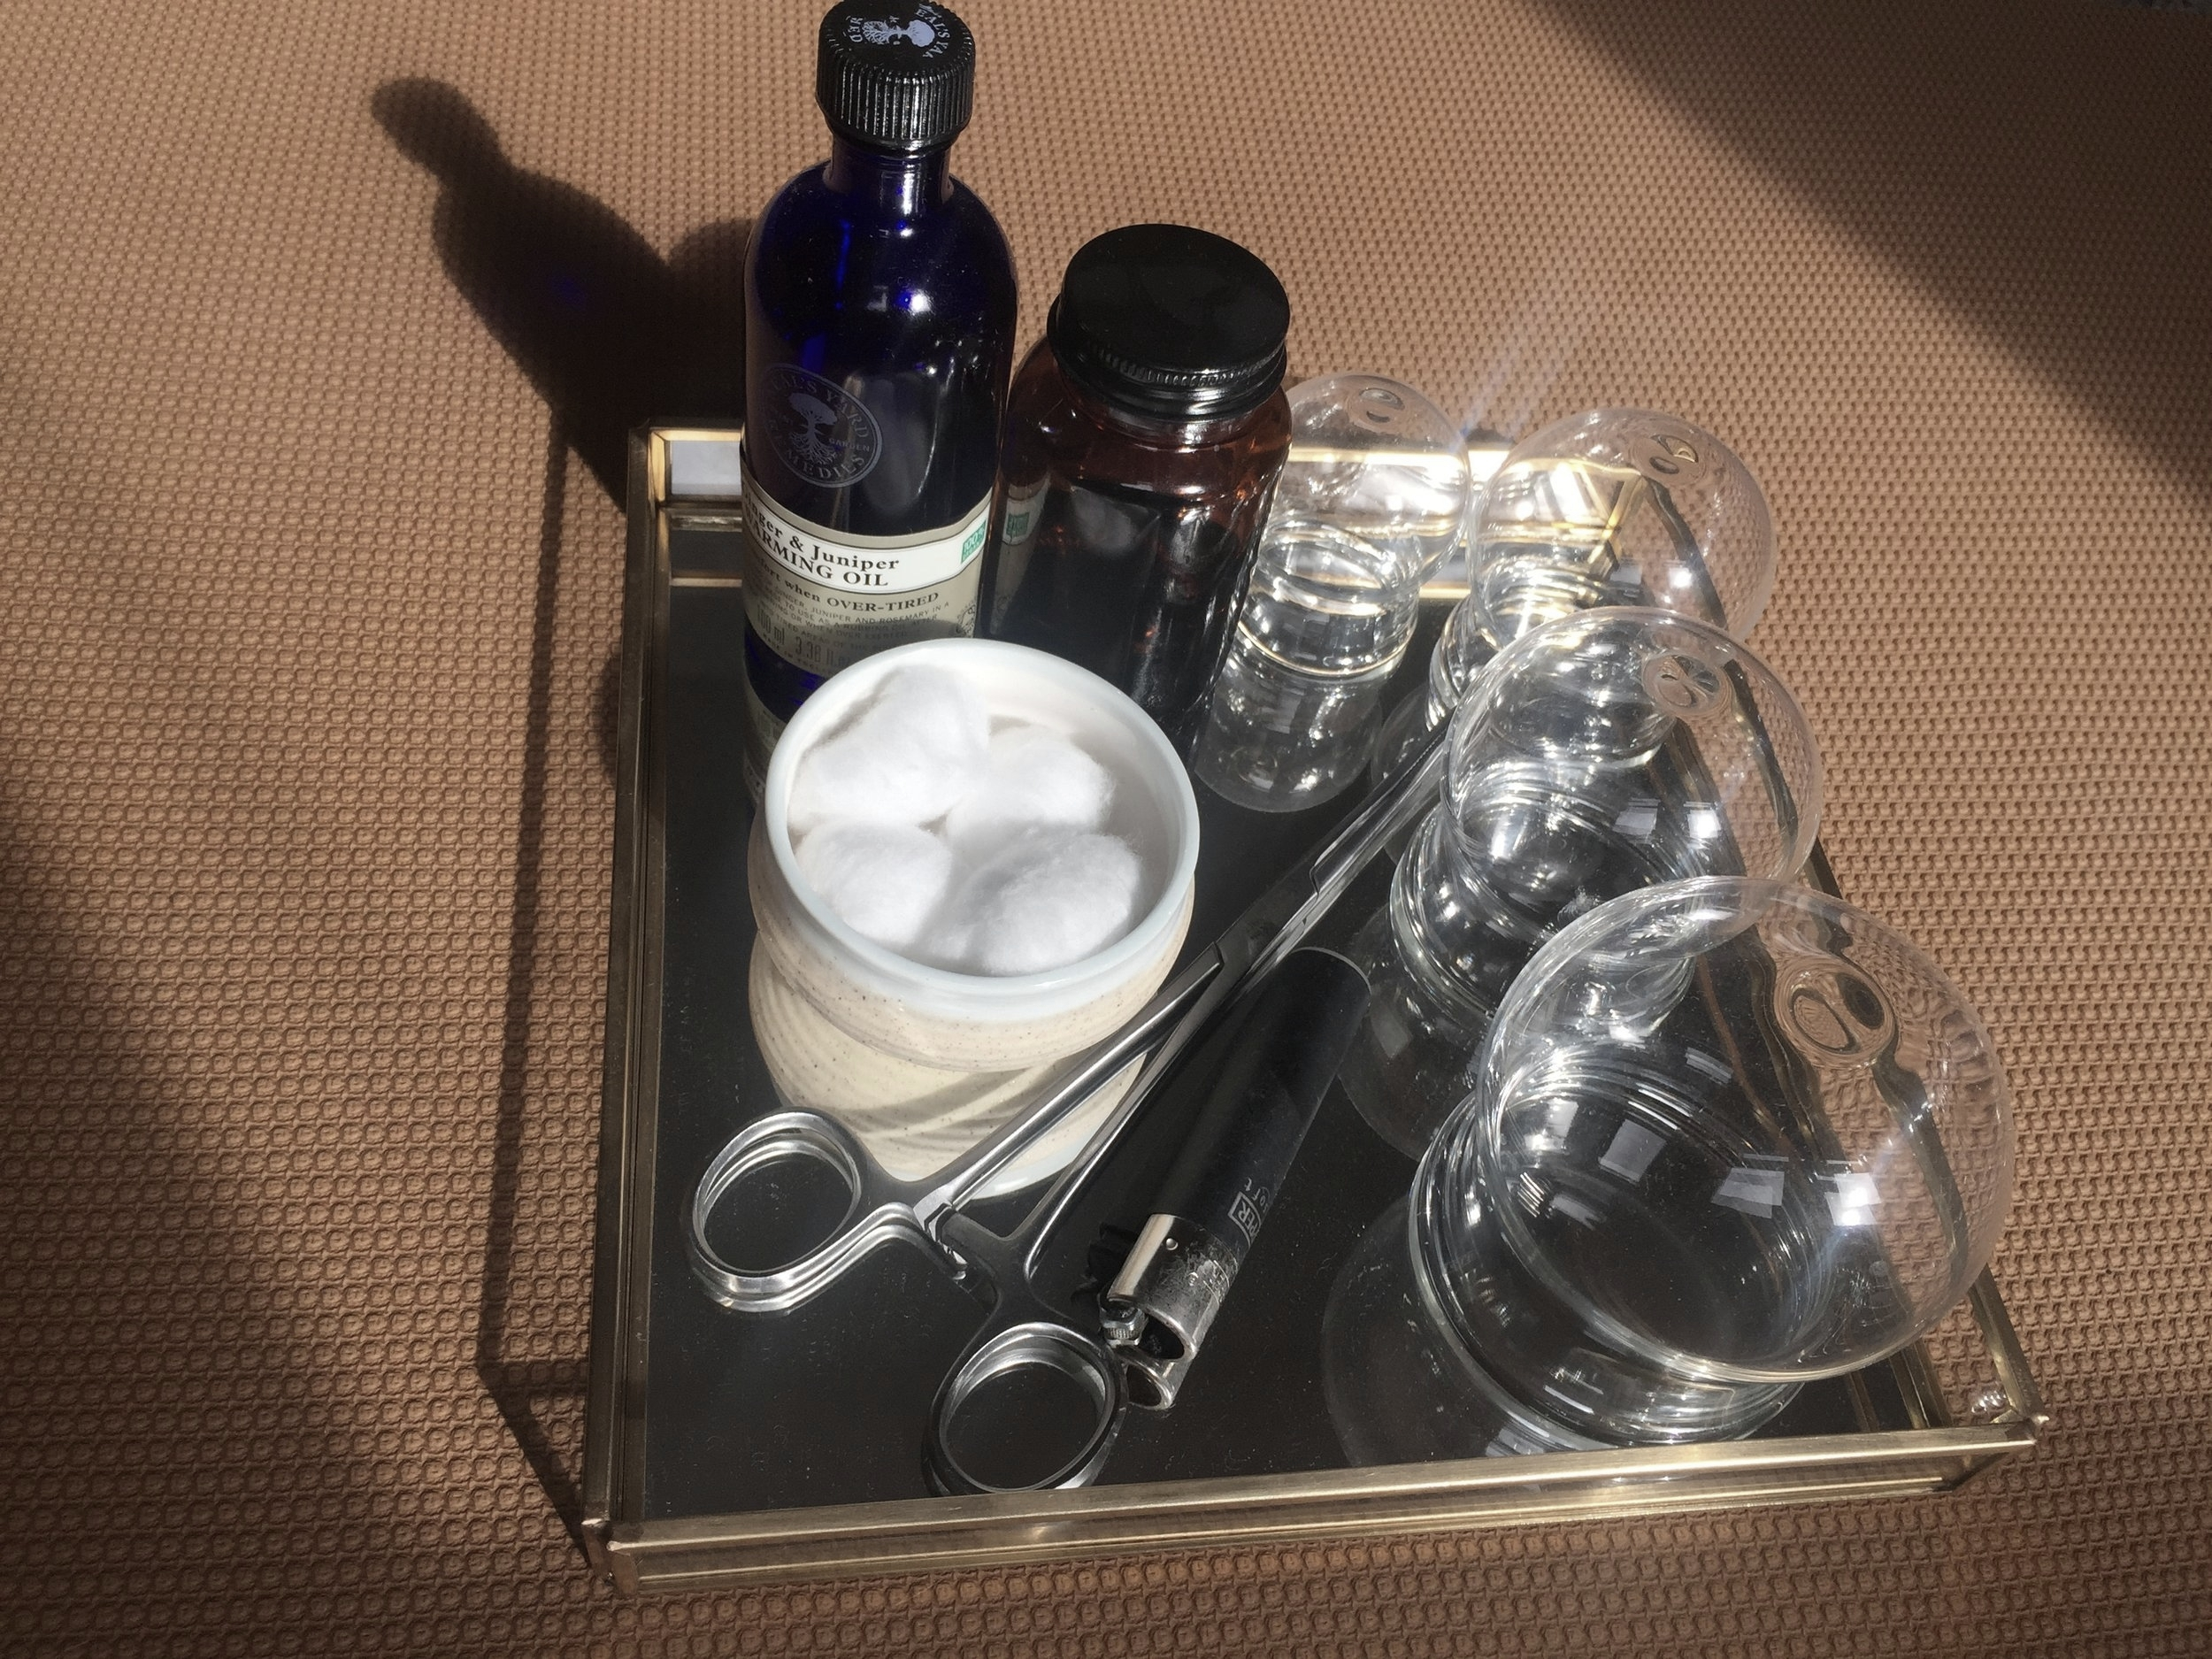 Cupping tools